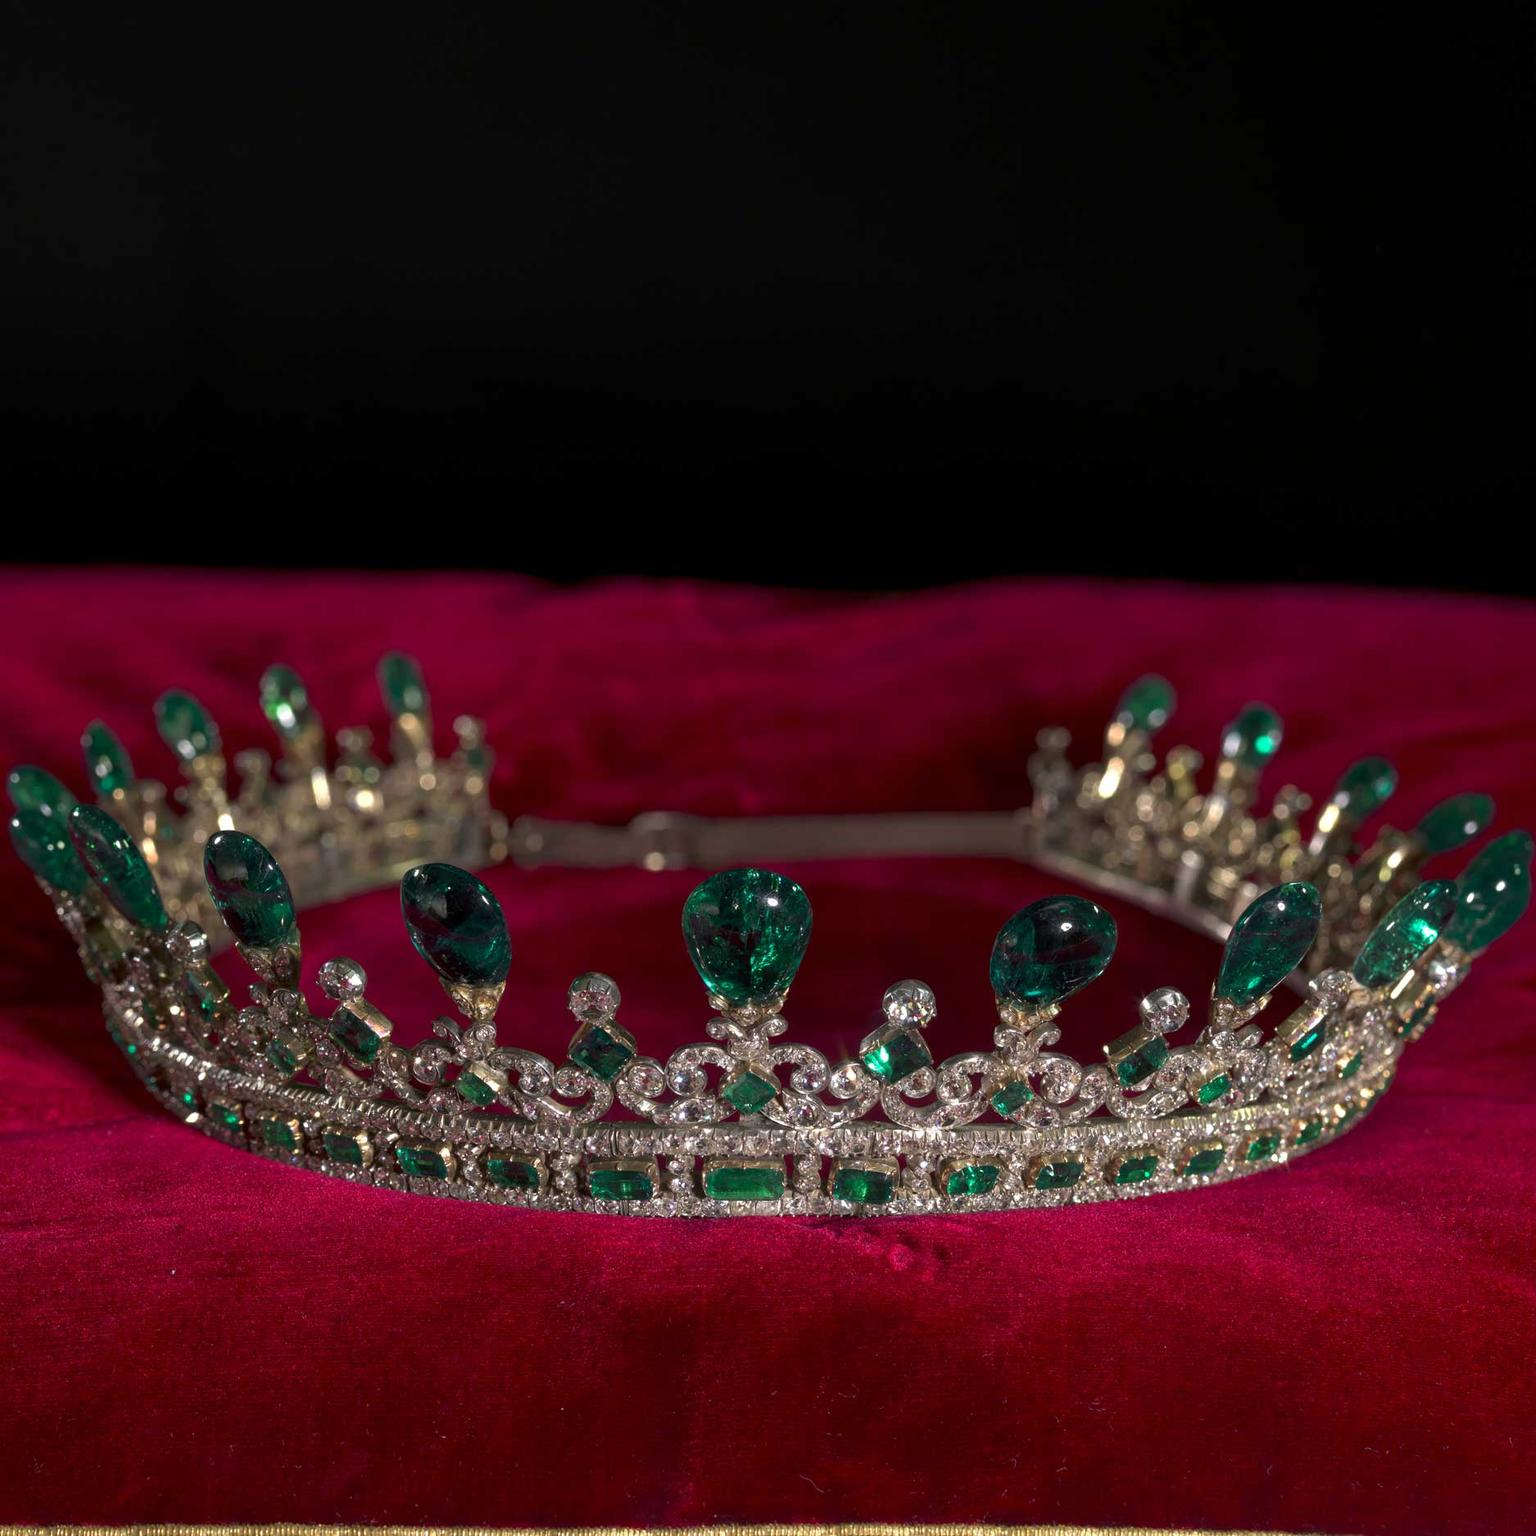 Queen-Victorias-1945-diamond-and-emerald-diadem-on-display-in-Victoria-Revealed